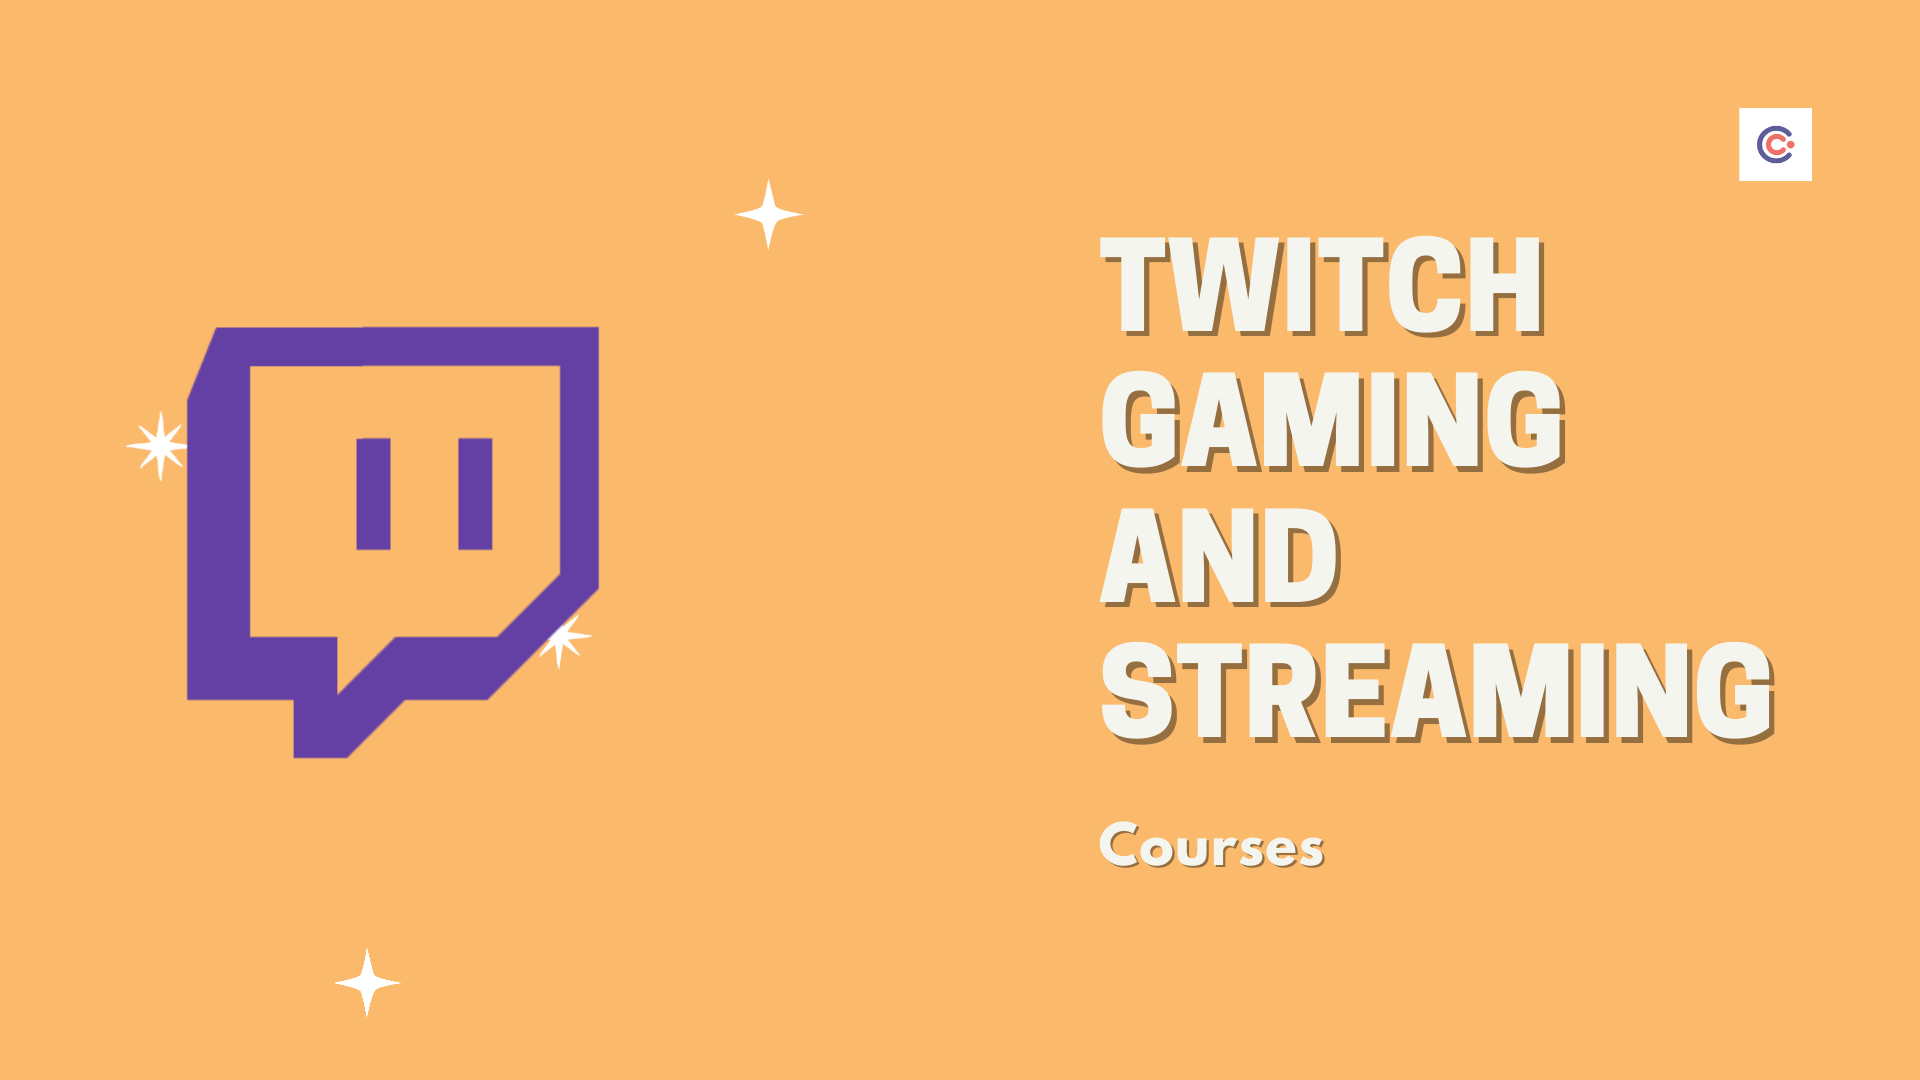 5 Best Twitch Gaming and Streaming Courses - Learn Twitch Streaming Online